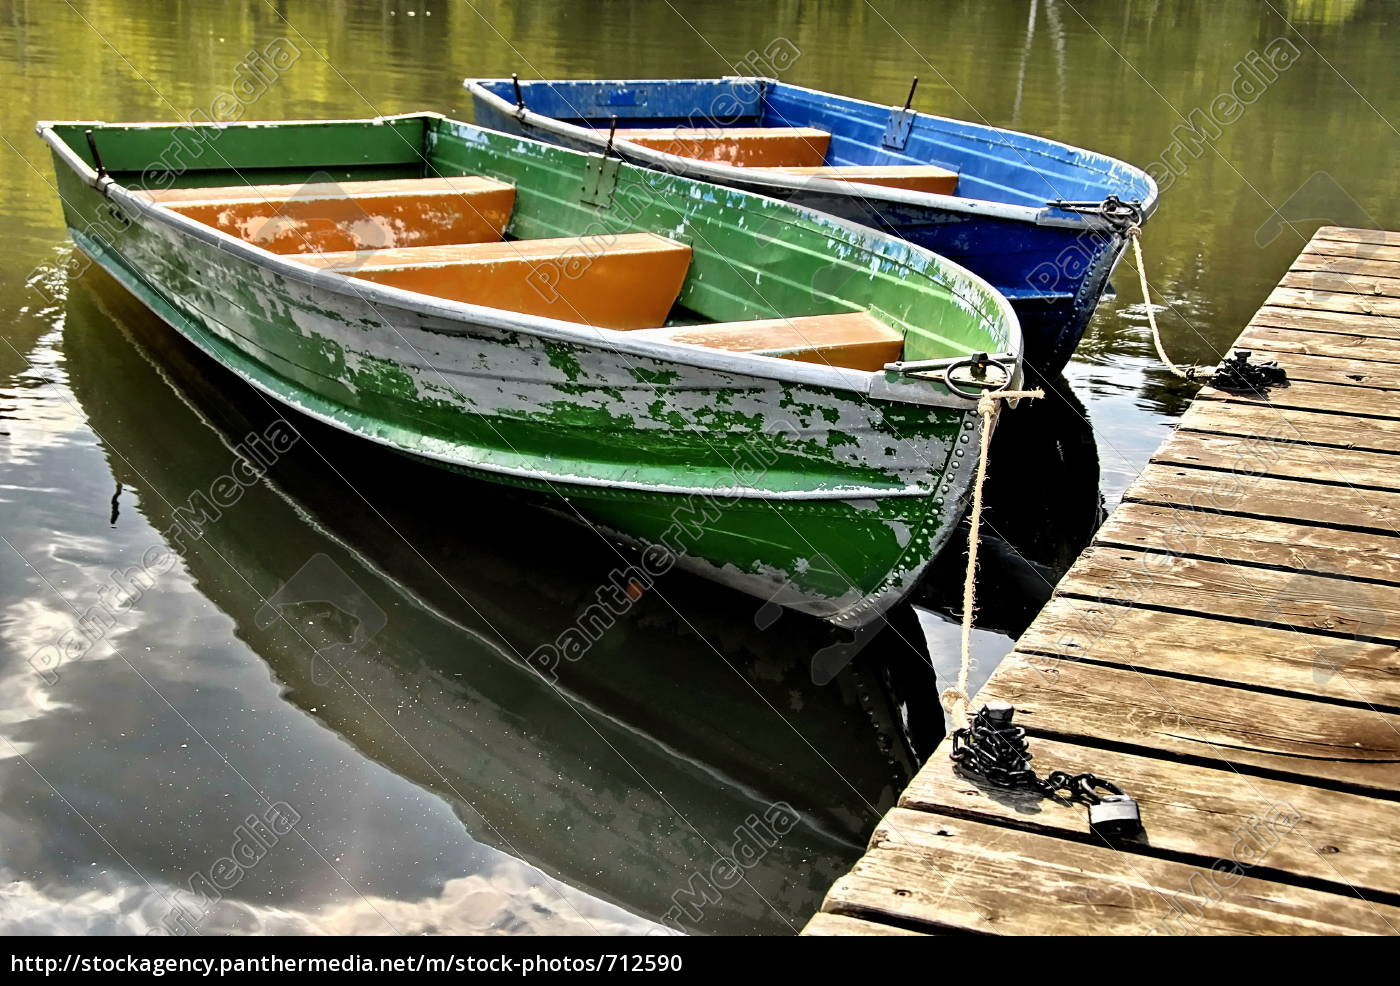 the, boats - 712590